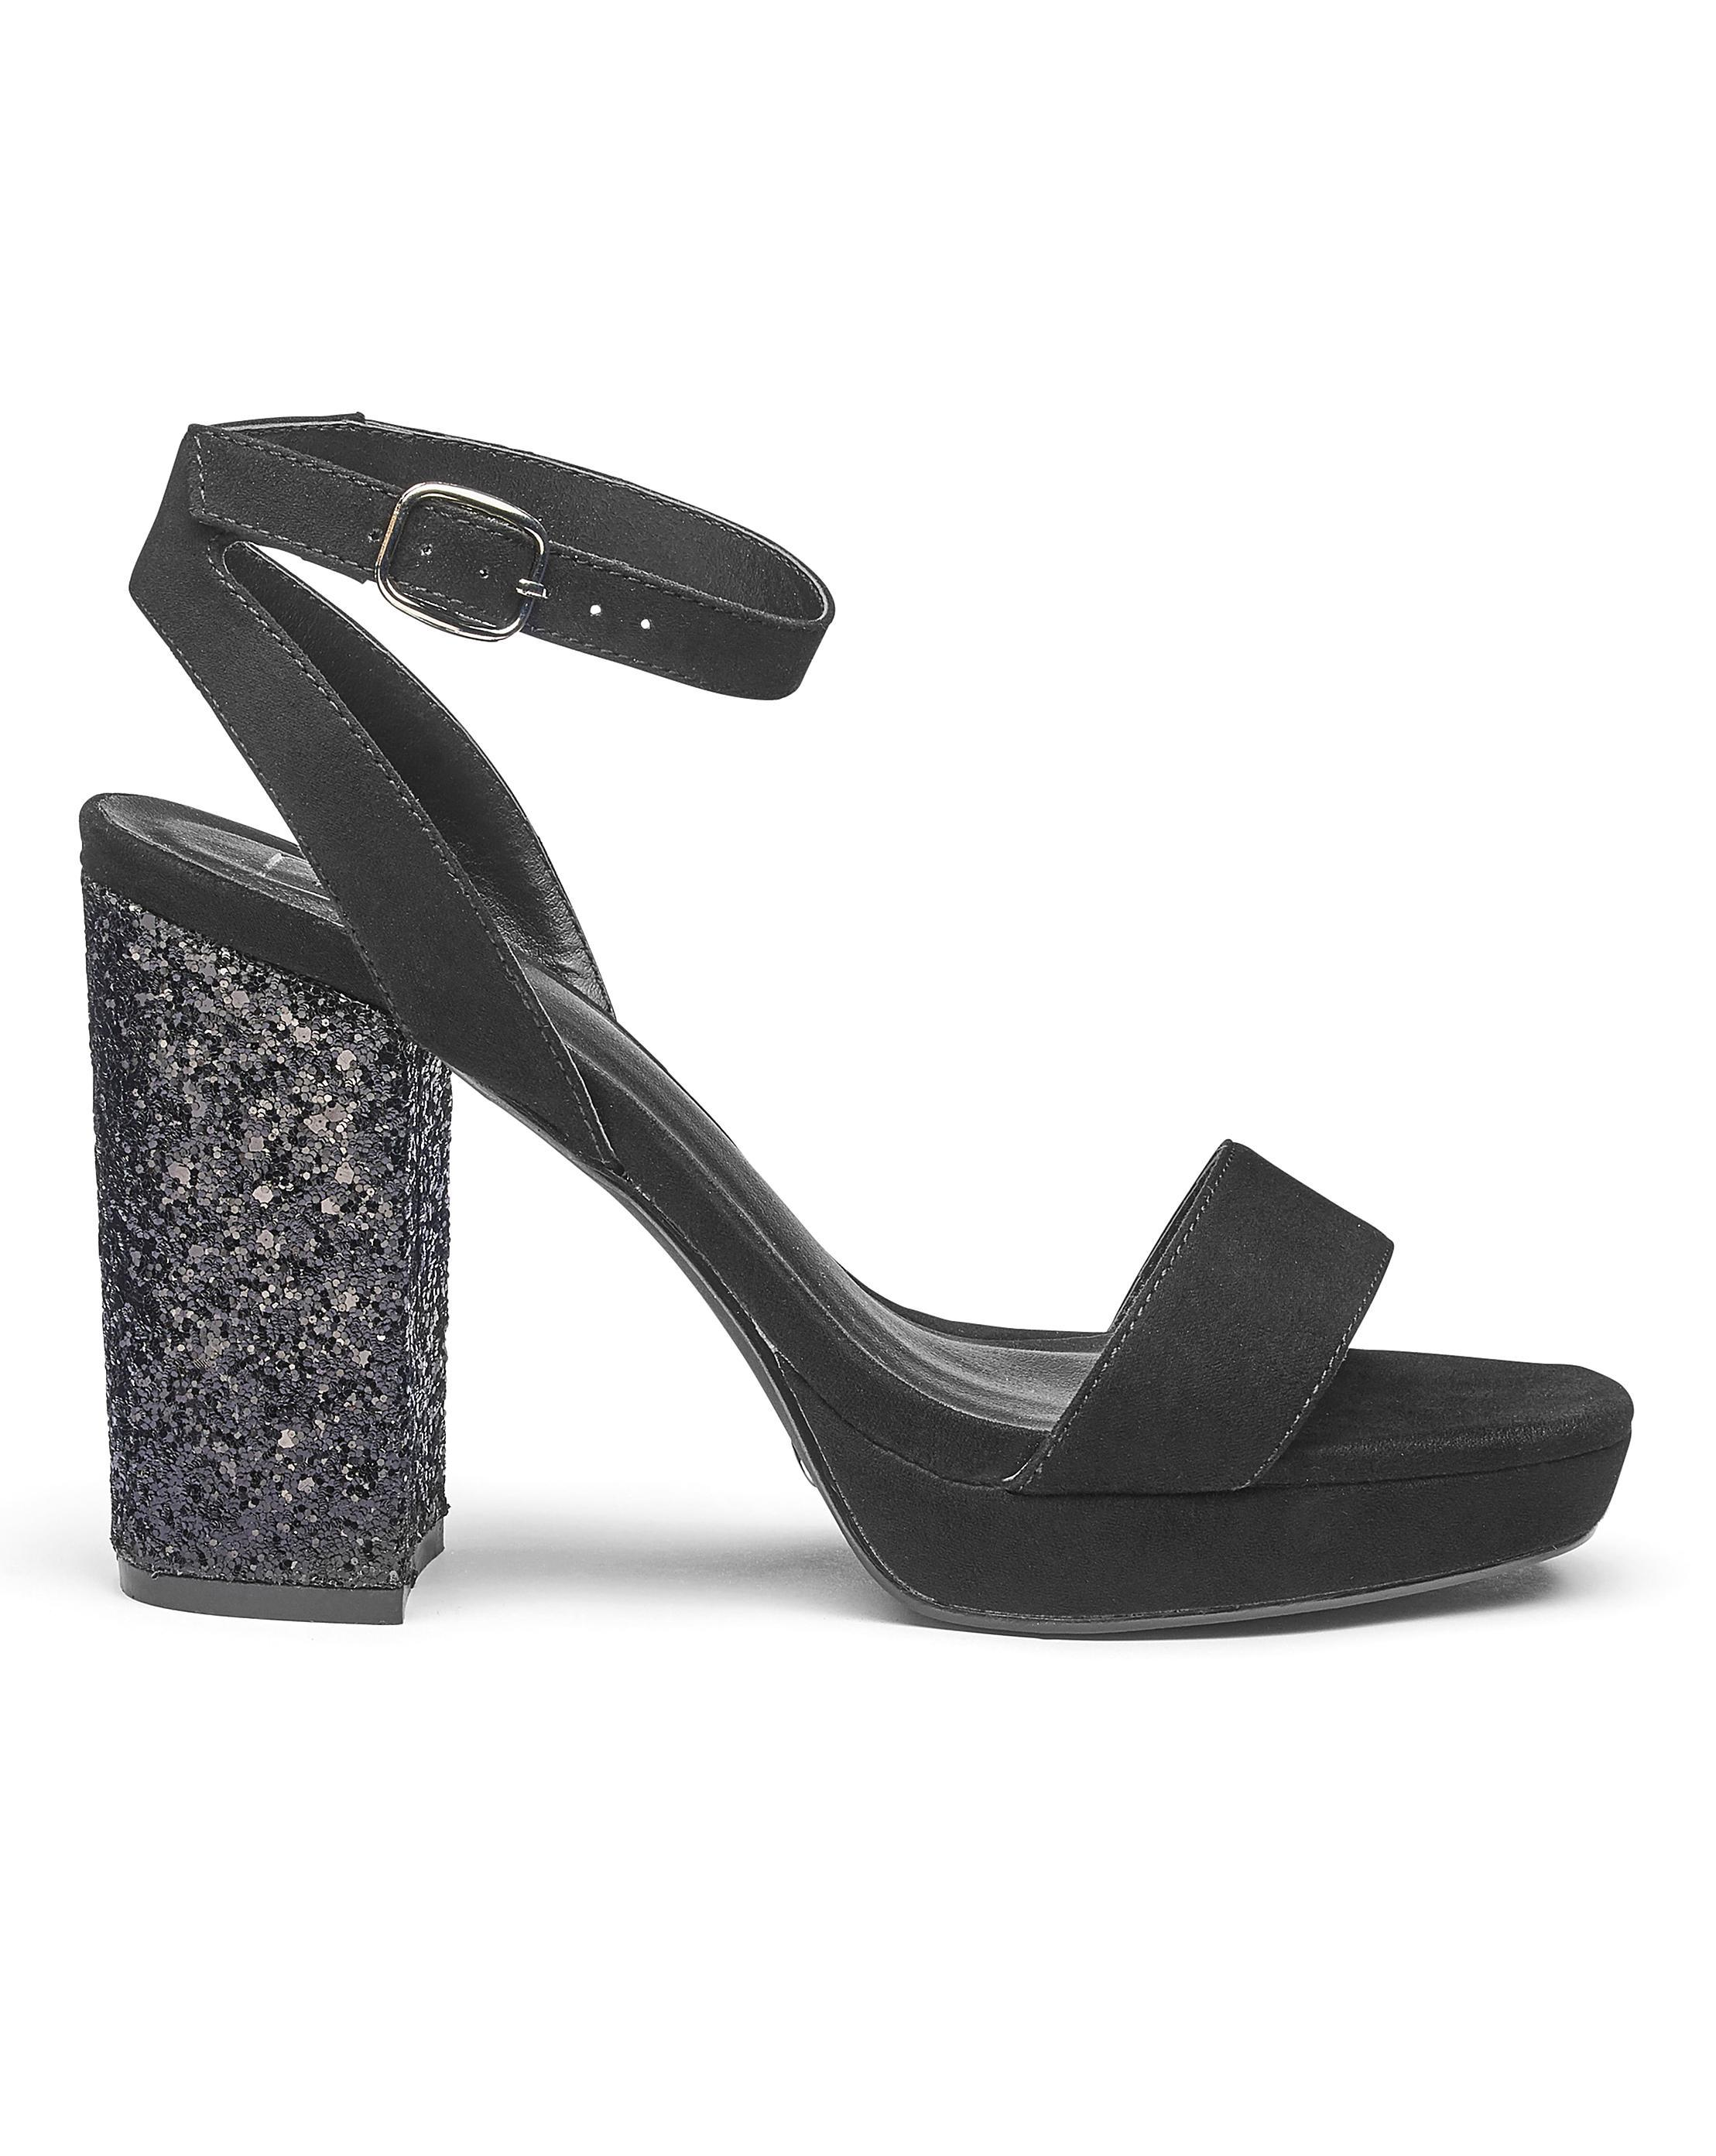 a985230c06b1 Simply Be. Women s Black Sole Diva Ally Glitter Platforms Extra Wide Eee Fit